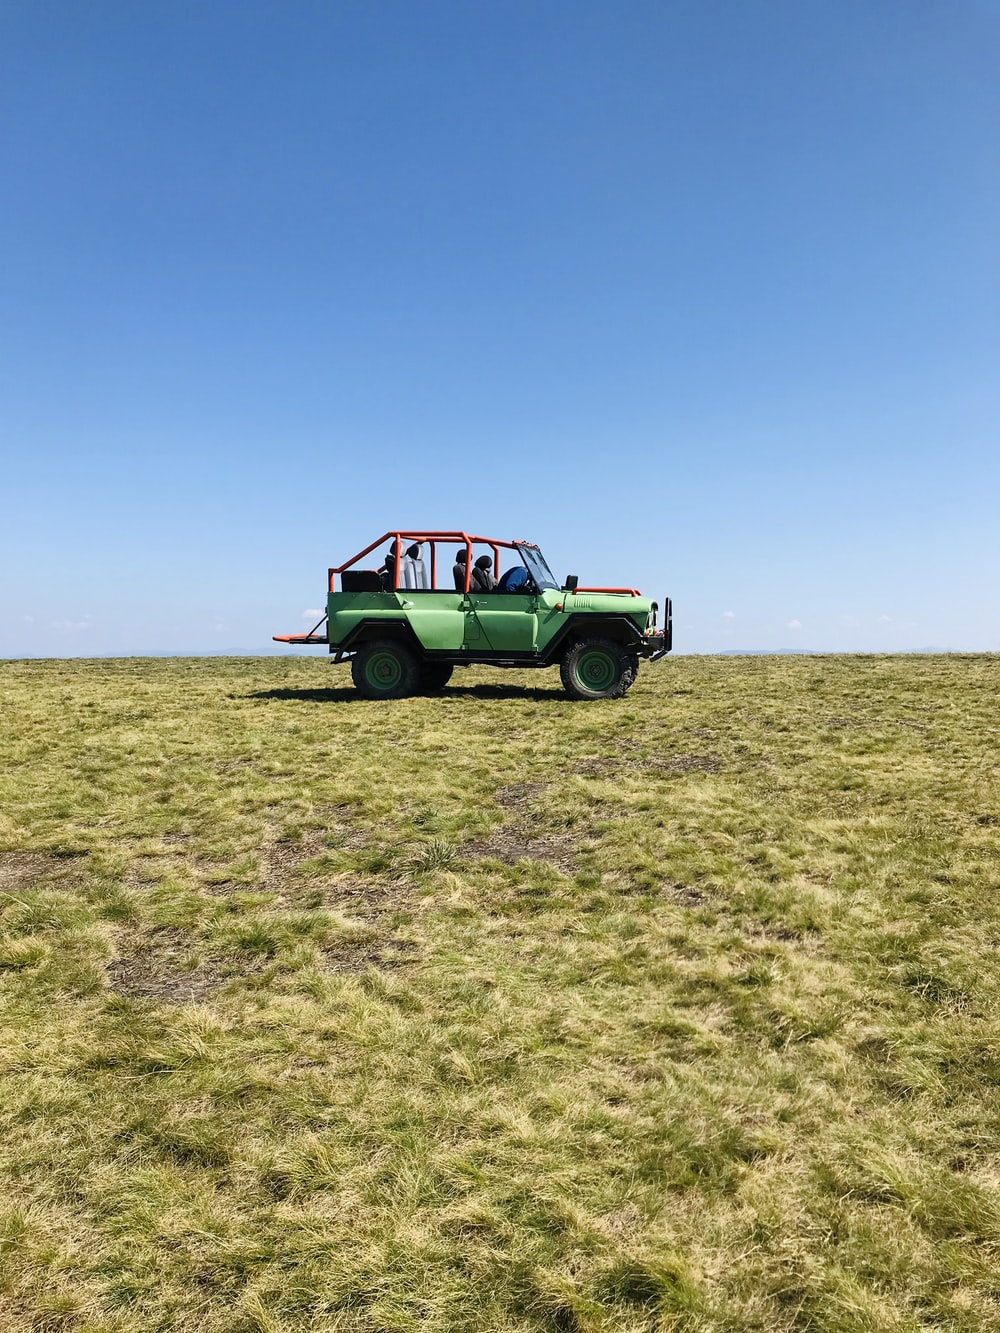 green and white car on green grass field under blue sky during daytime